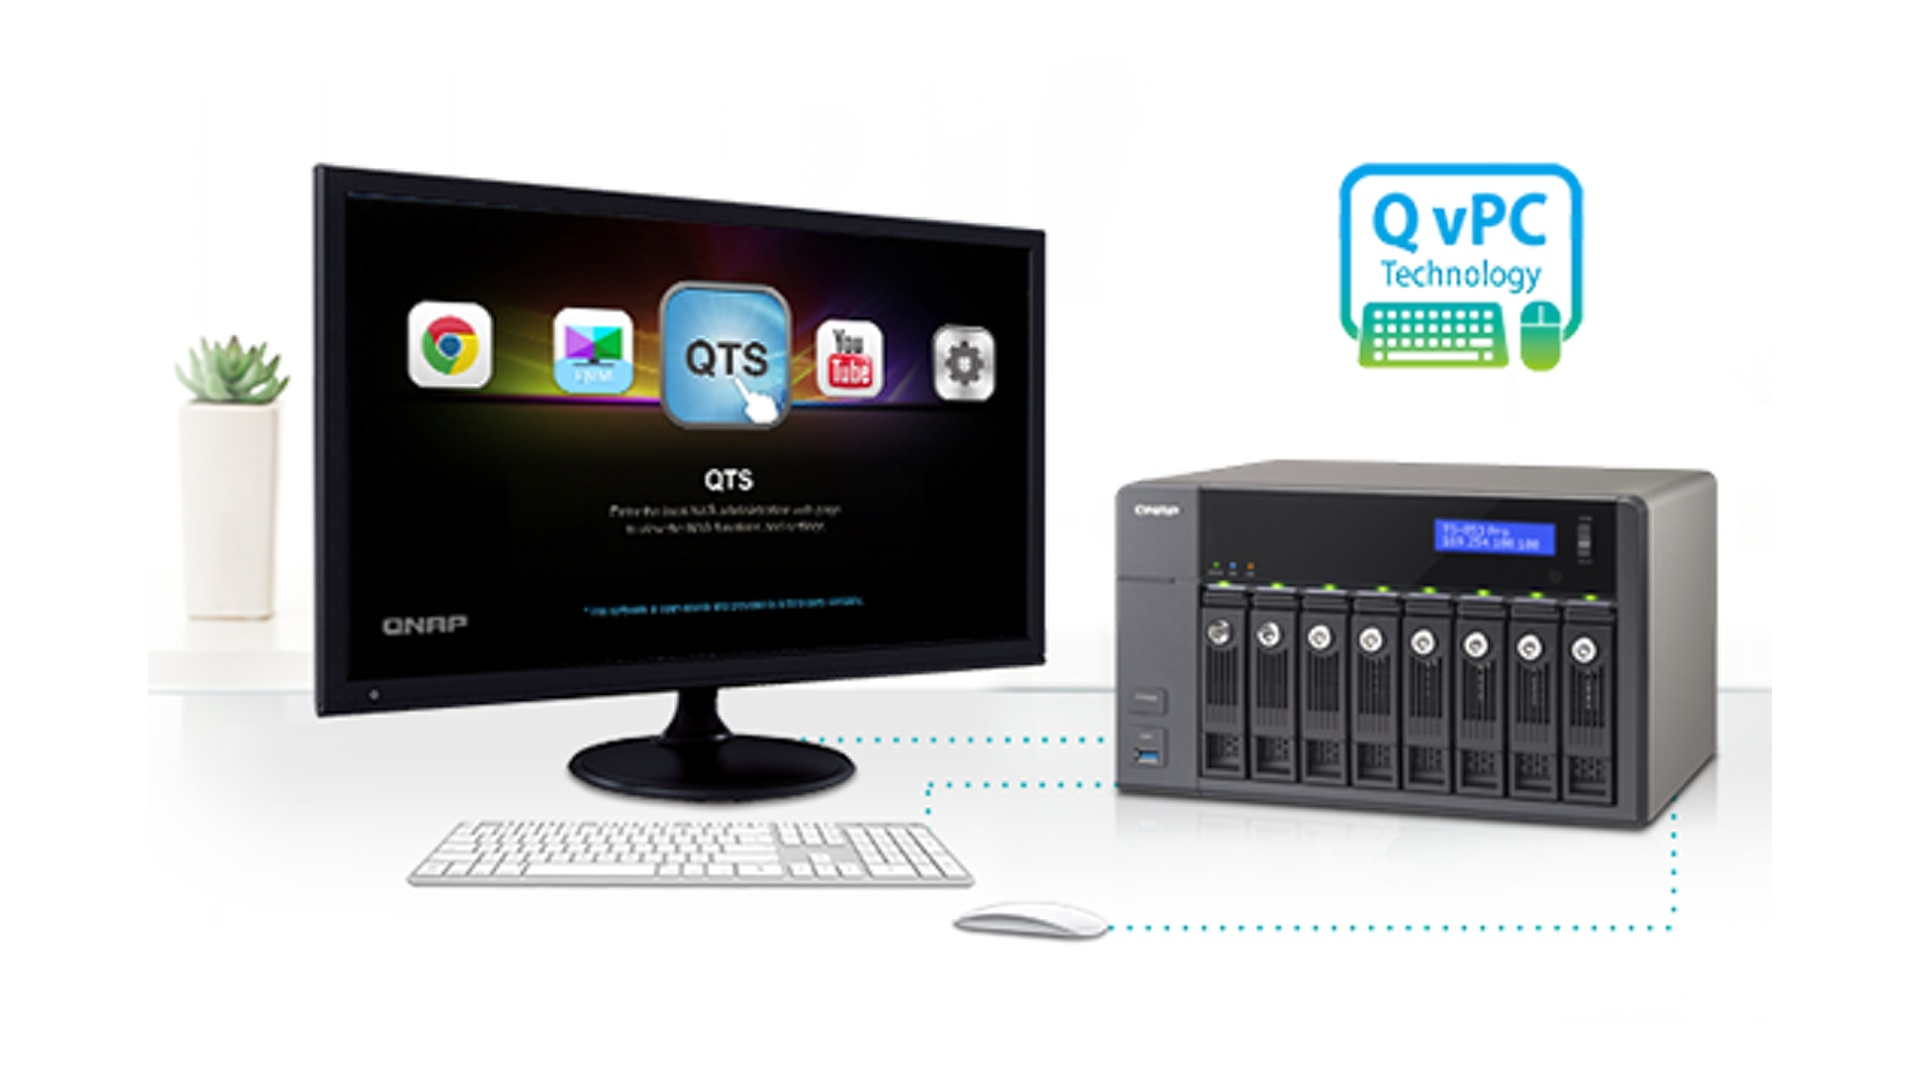 qnap-intel-celeron-quad-core